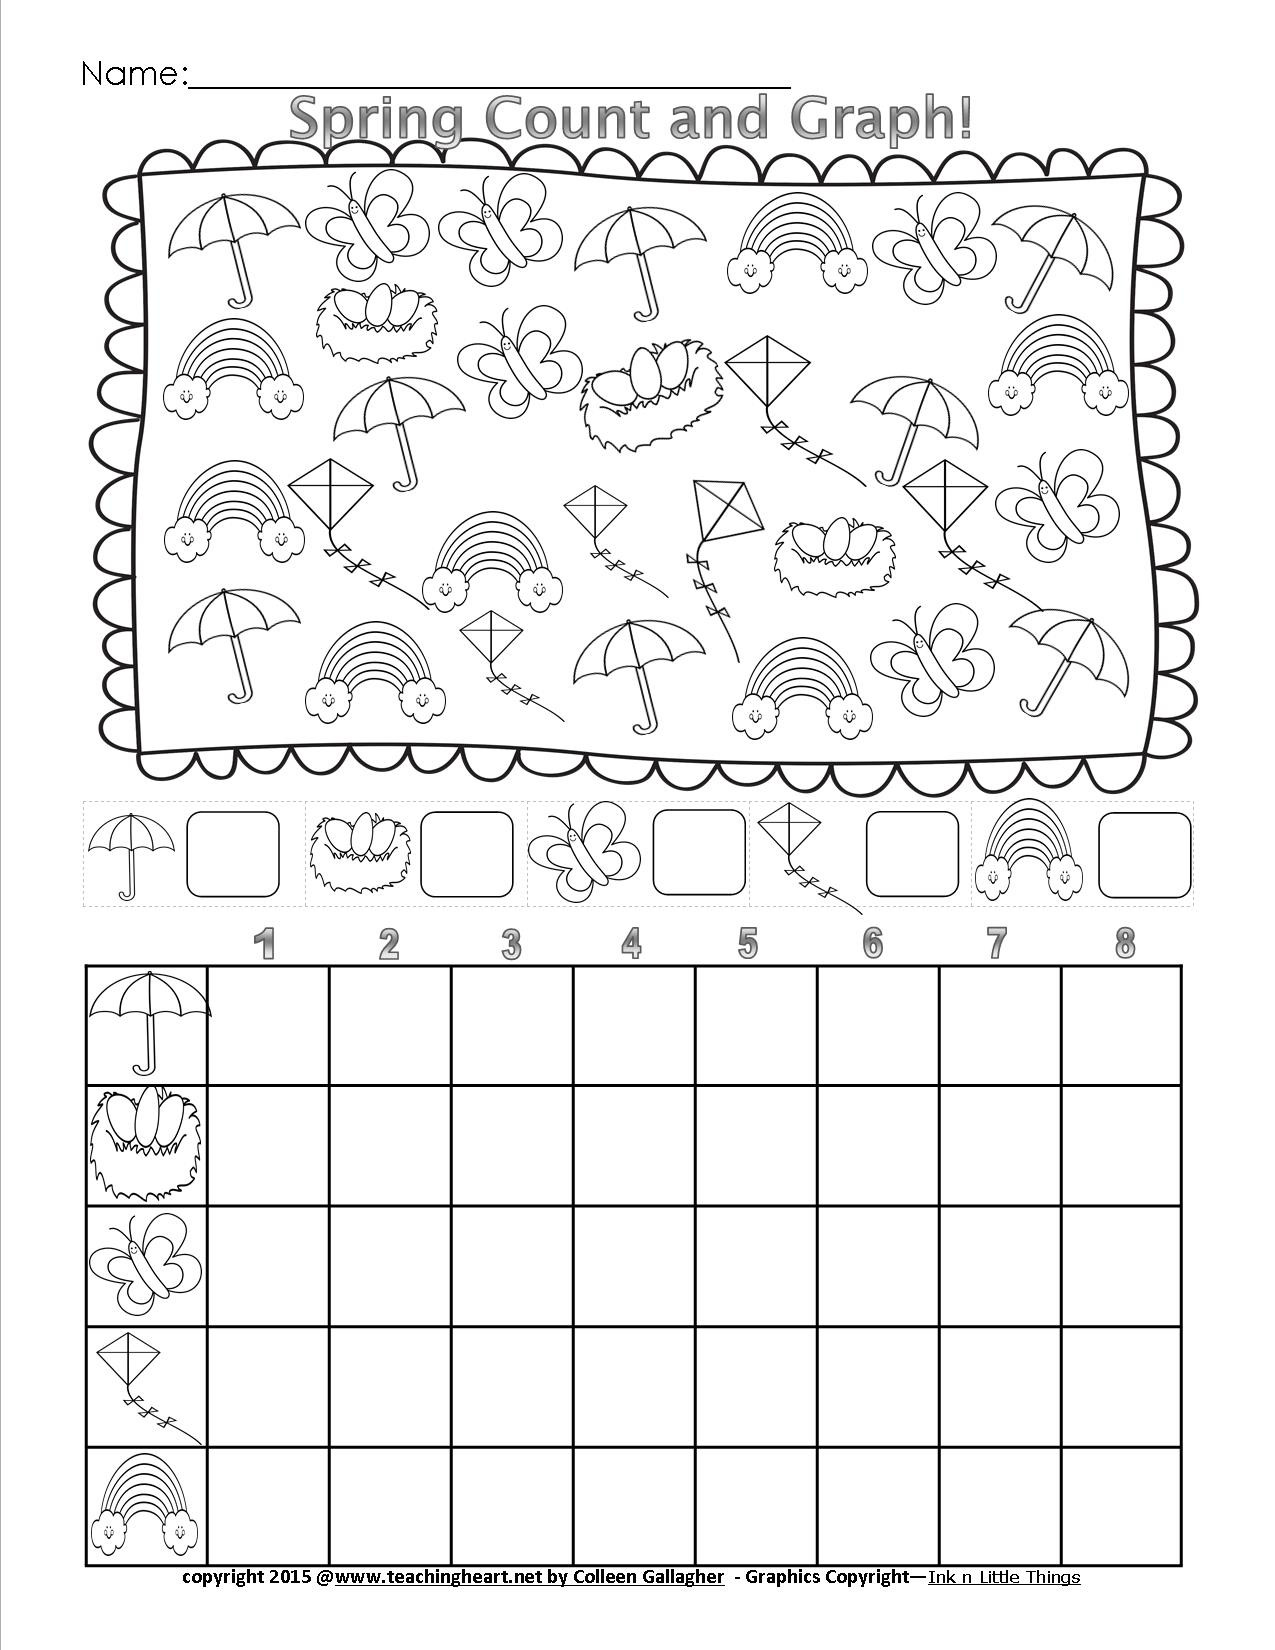 Spring Count and Graph – Free – Teaching Heart Blog